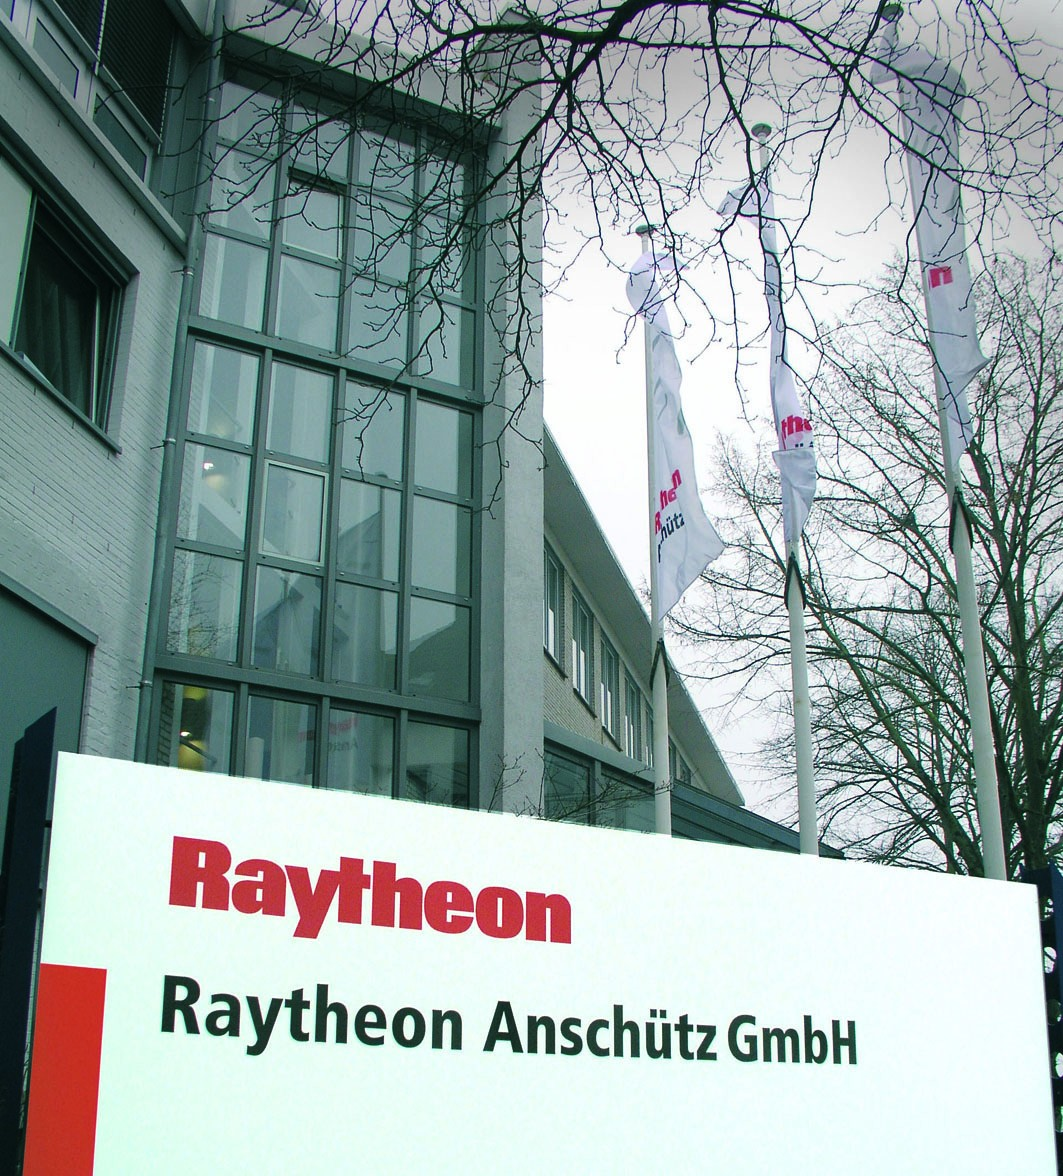 Raytheon Anschütz - The